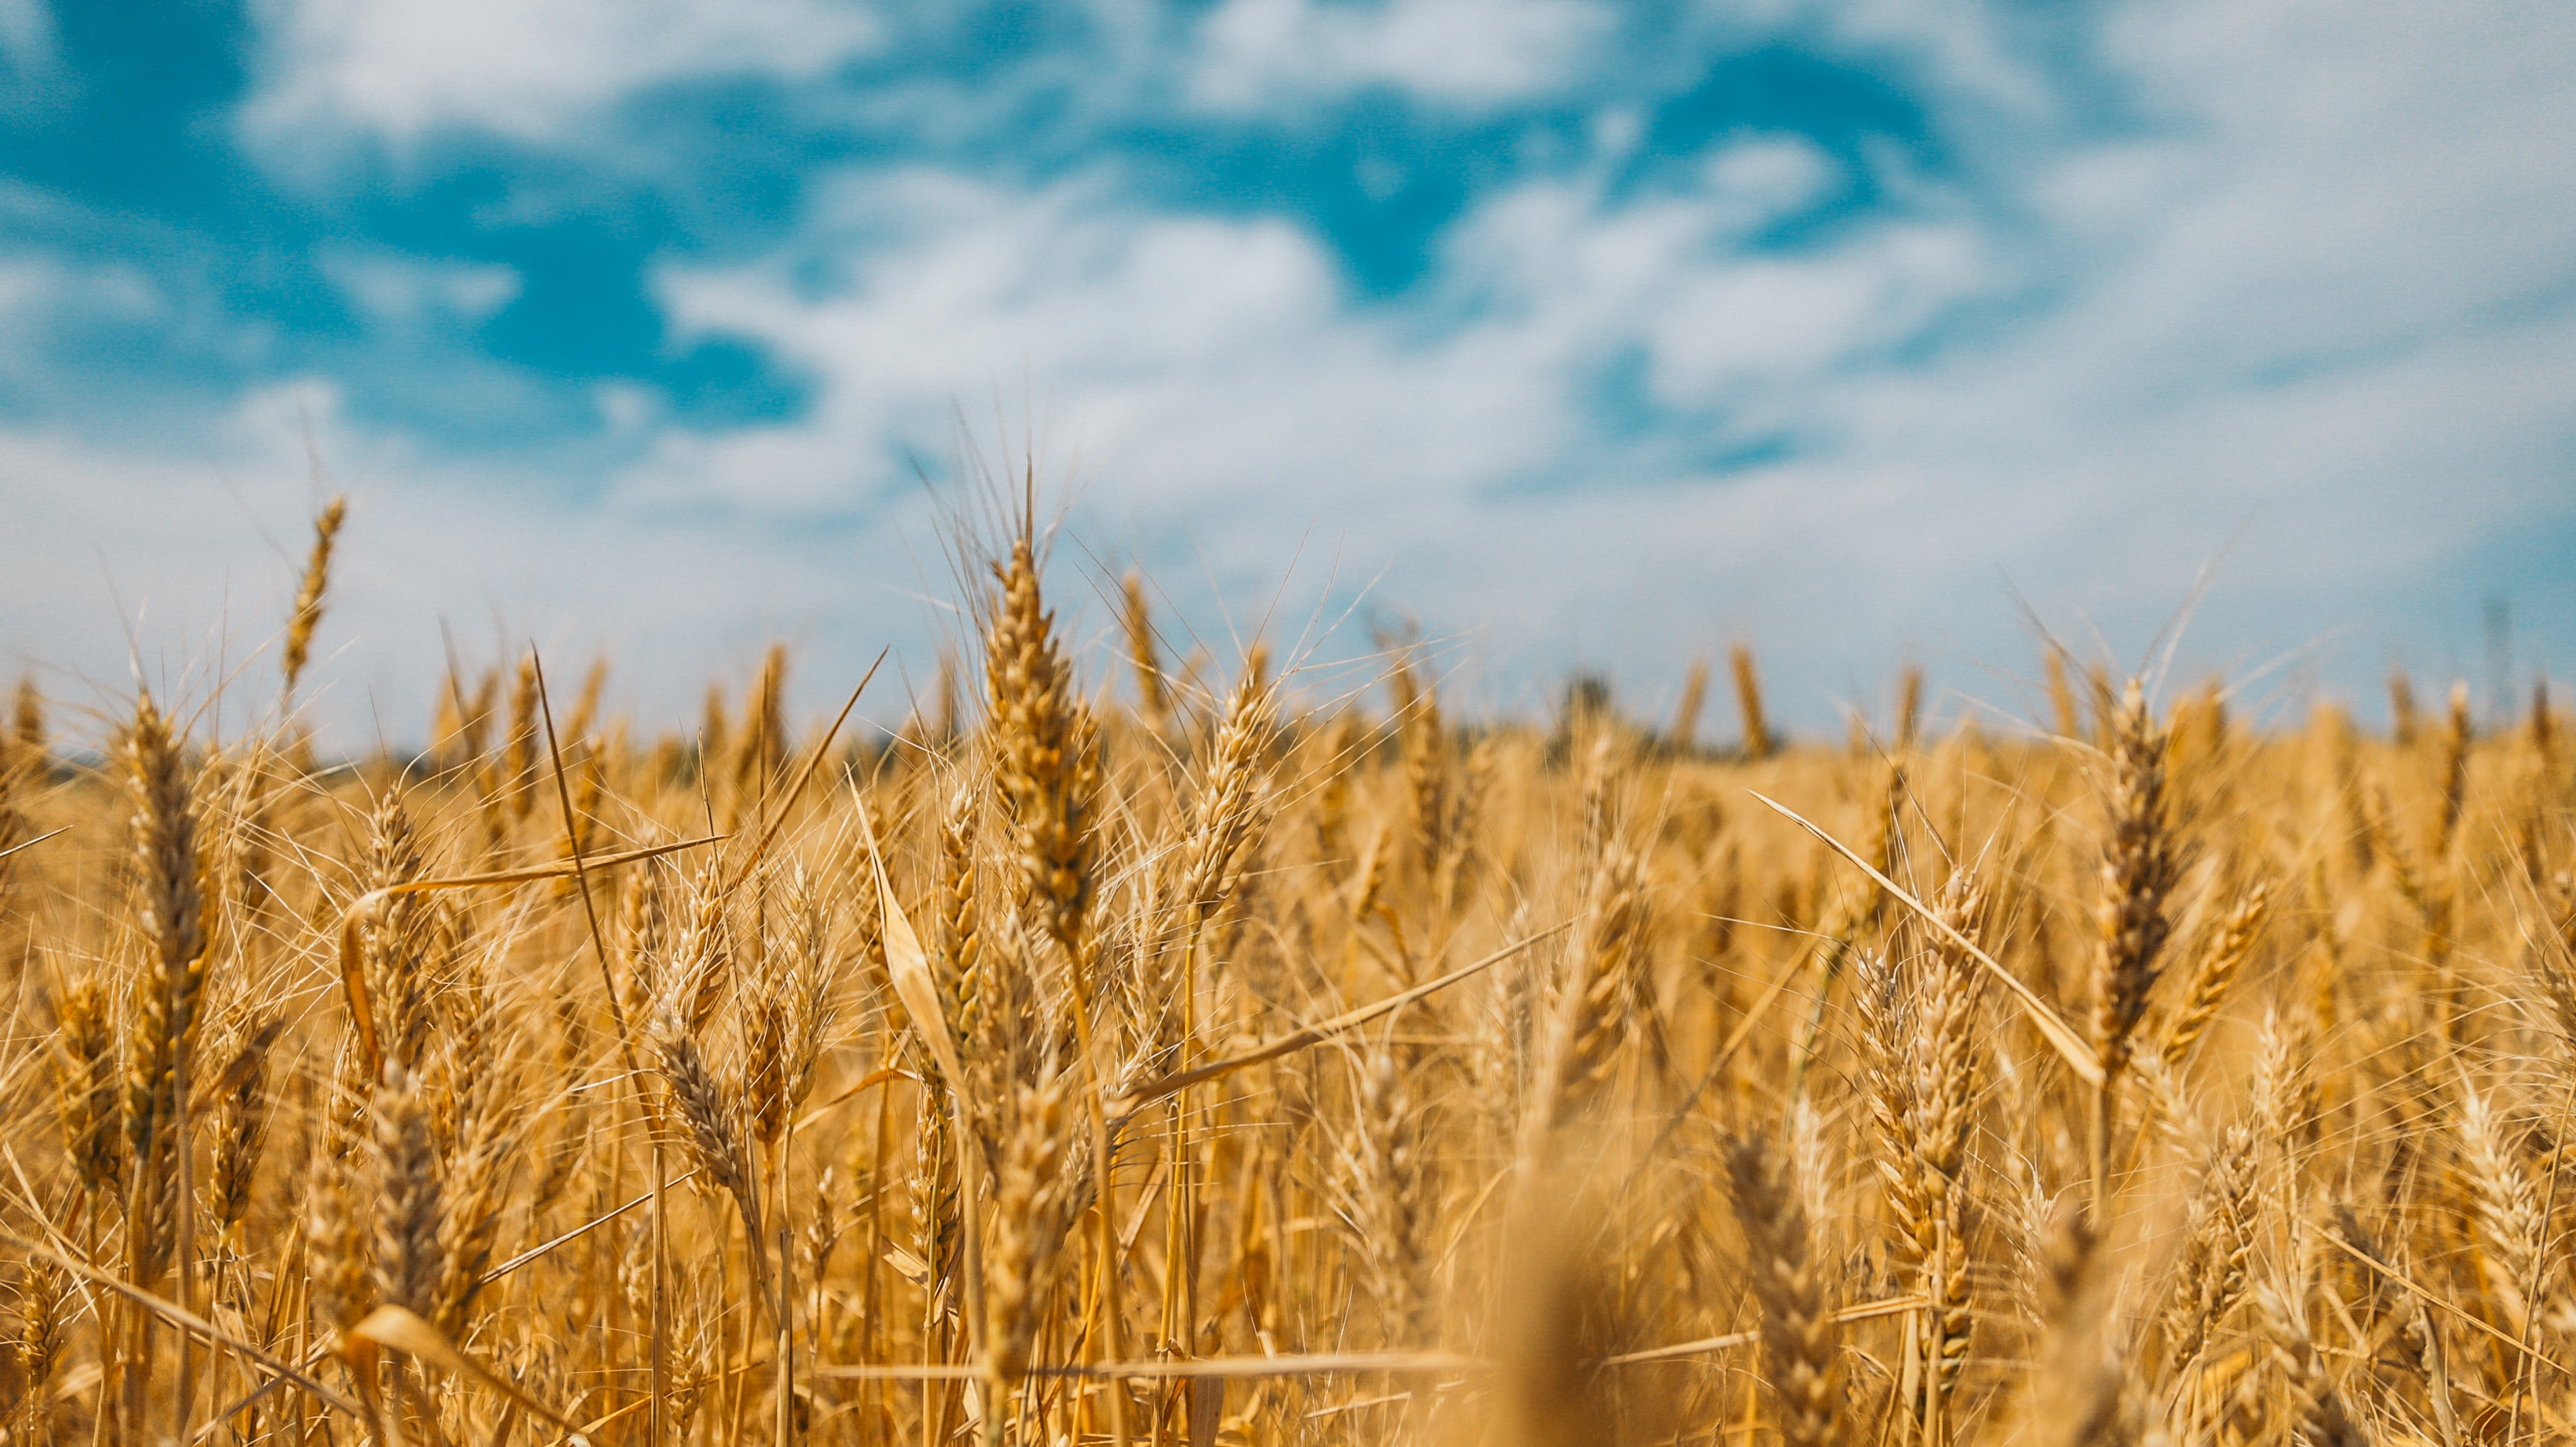 Wallpaper Field 4k Hd Wallpaper Wheat Spikes Sky: Download Free Images On Unsplash